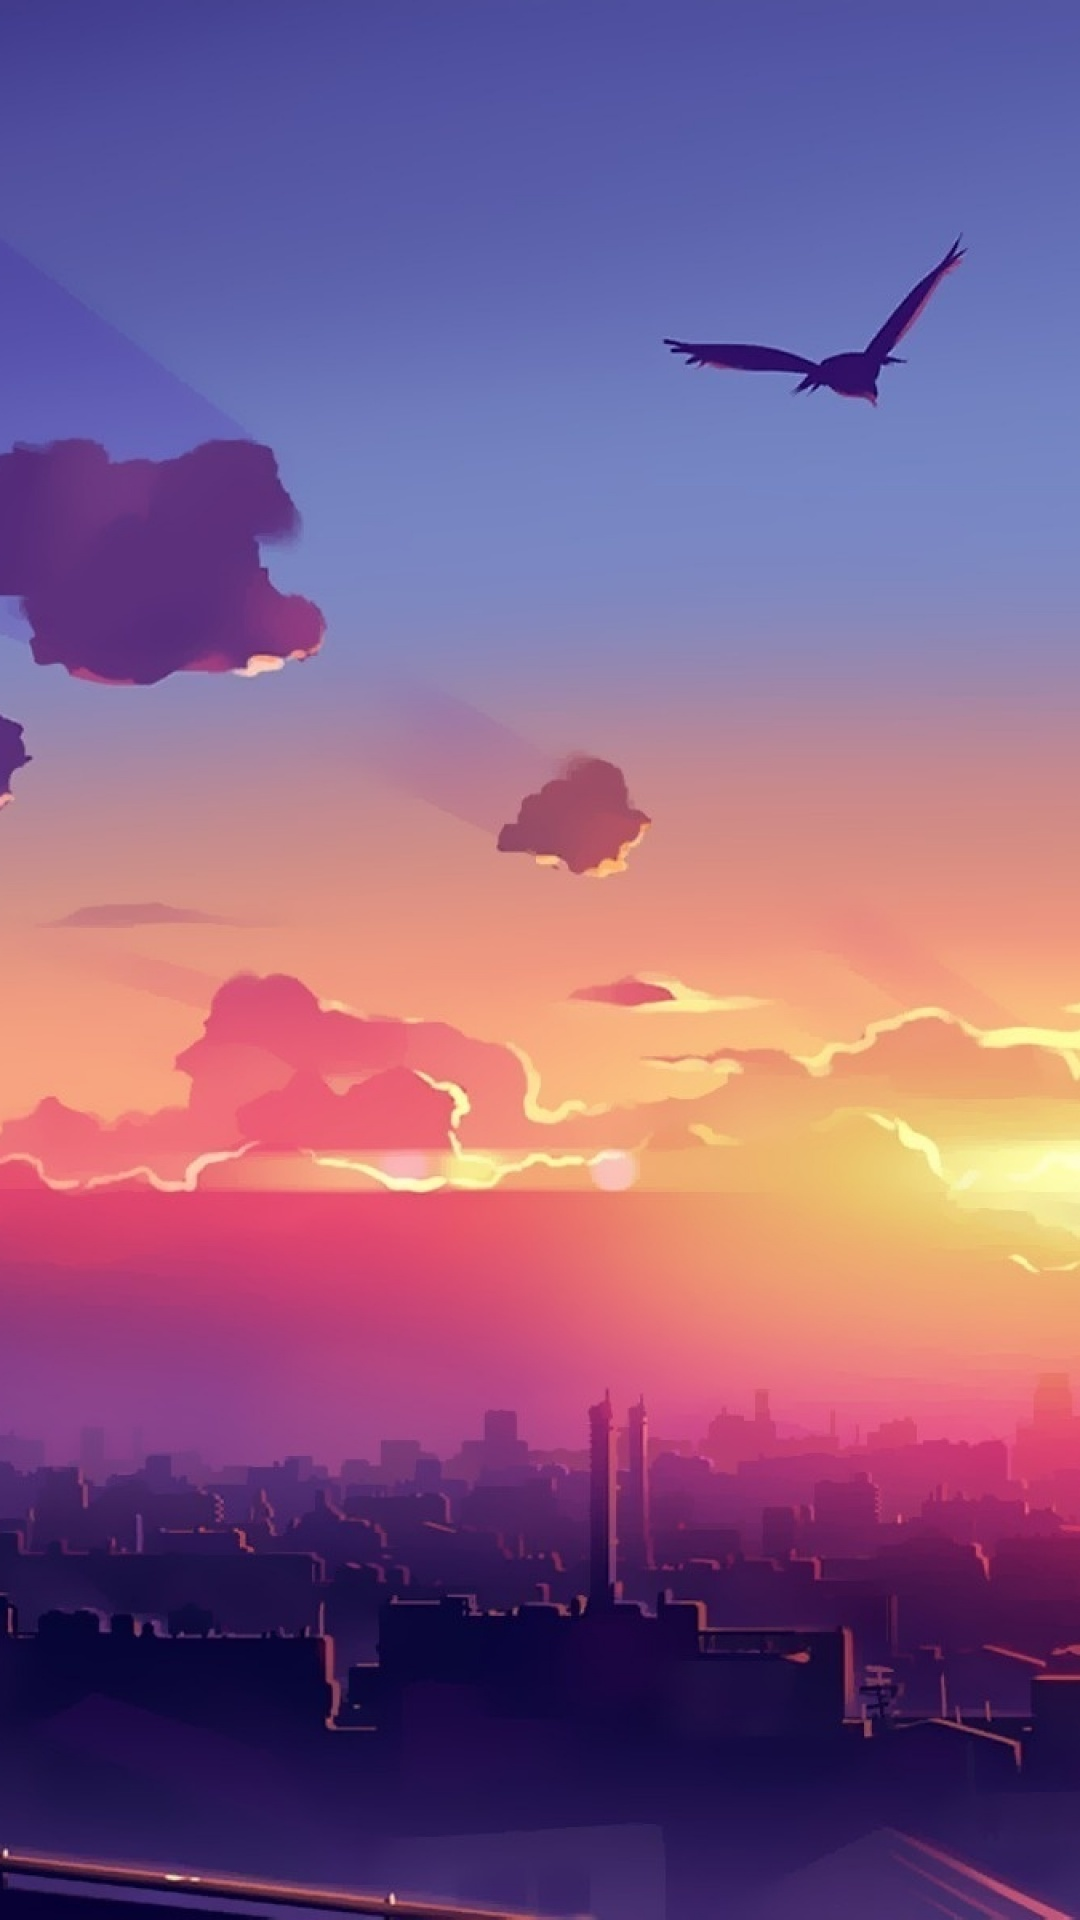 Anime Sunset Wallpaper Posted By Ryan Anderson